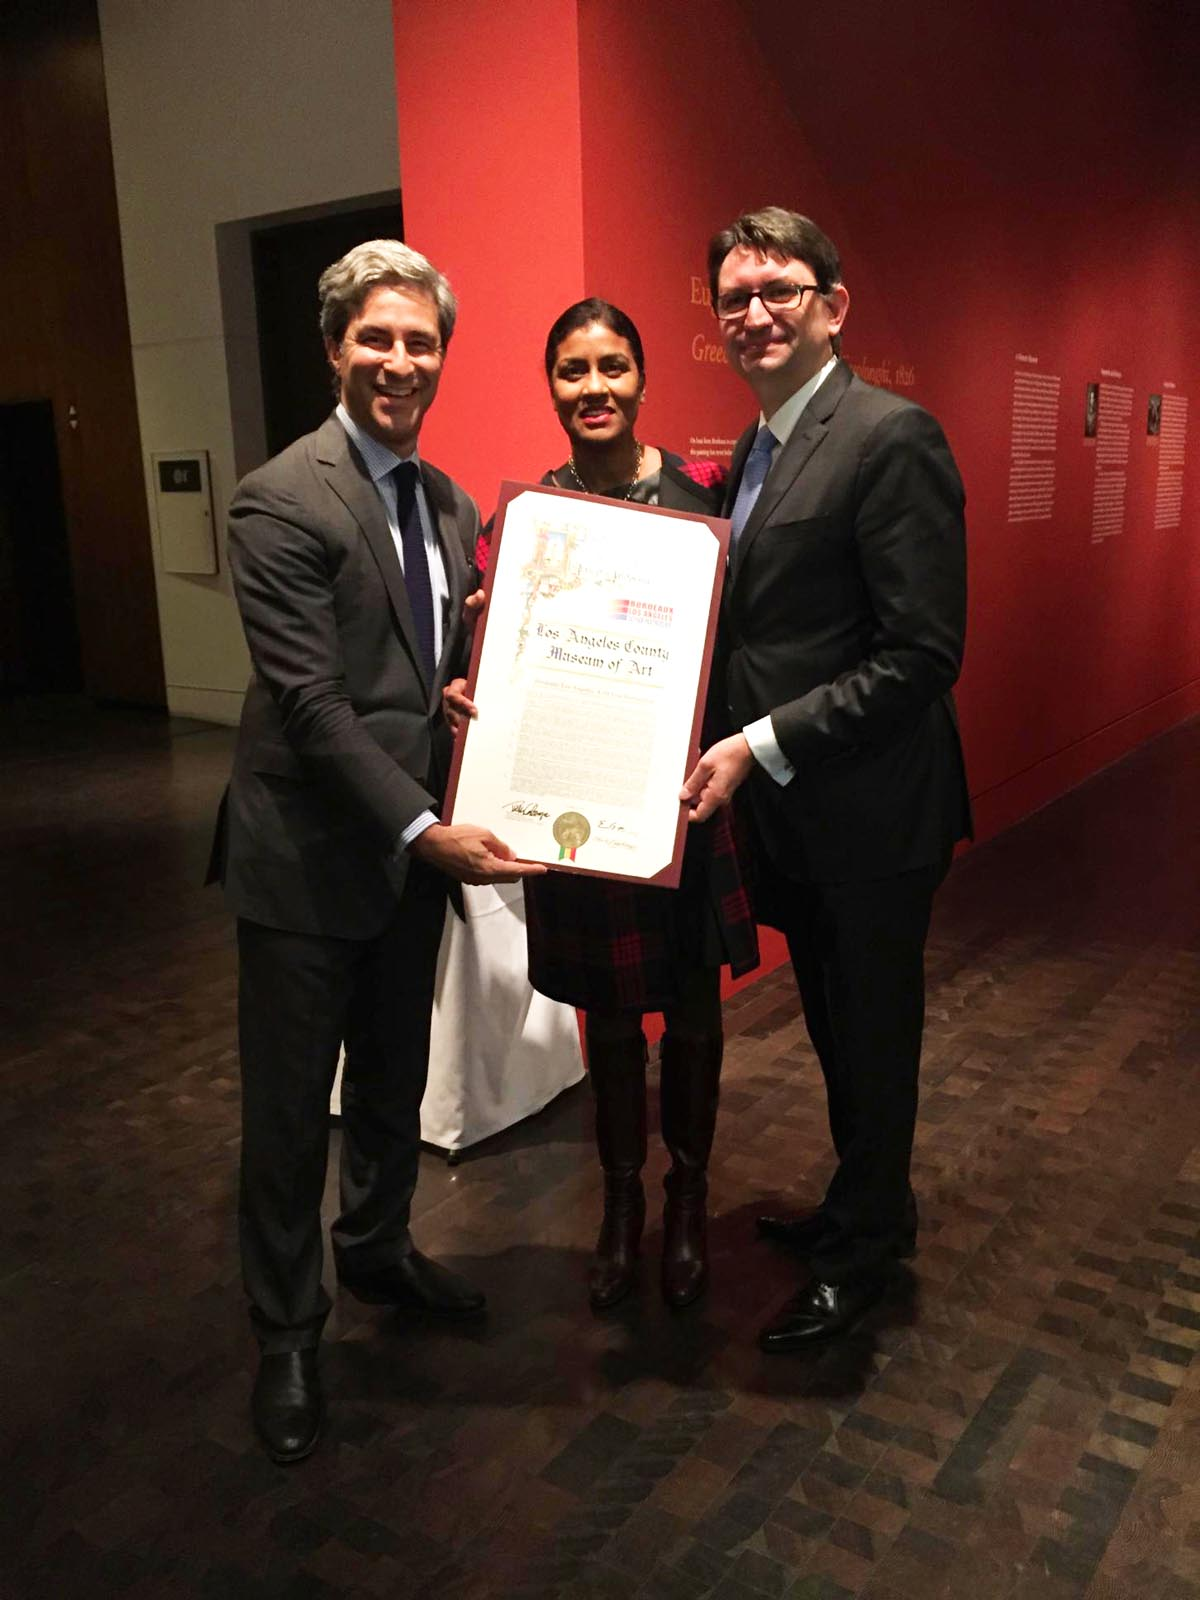 Director of the Los Angeles County Museum of Art (LACMA), Michael Govan,Kamilla Blanche and Axel Cruau,Consul General of France